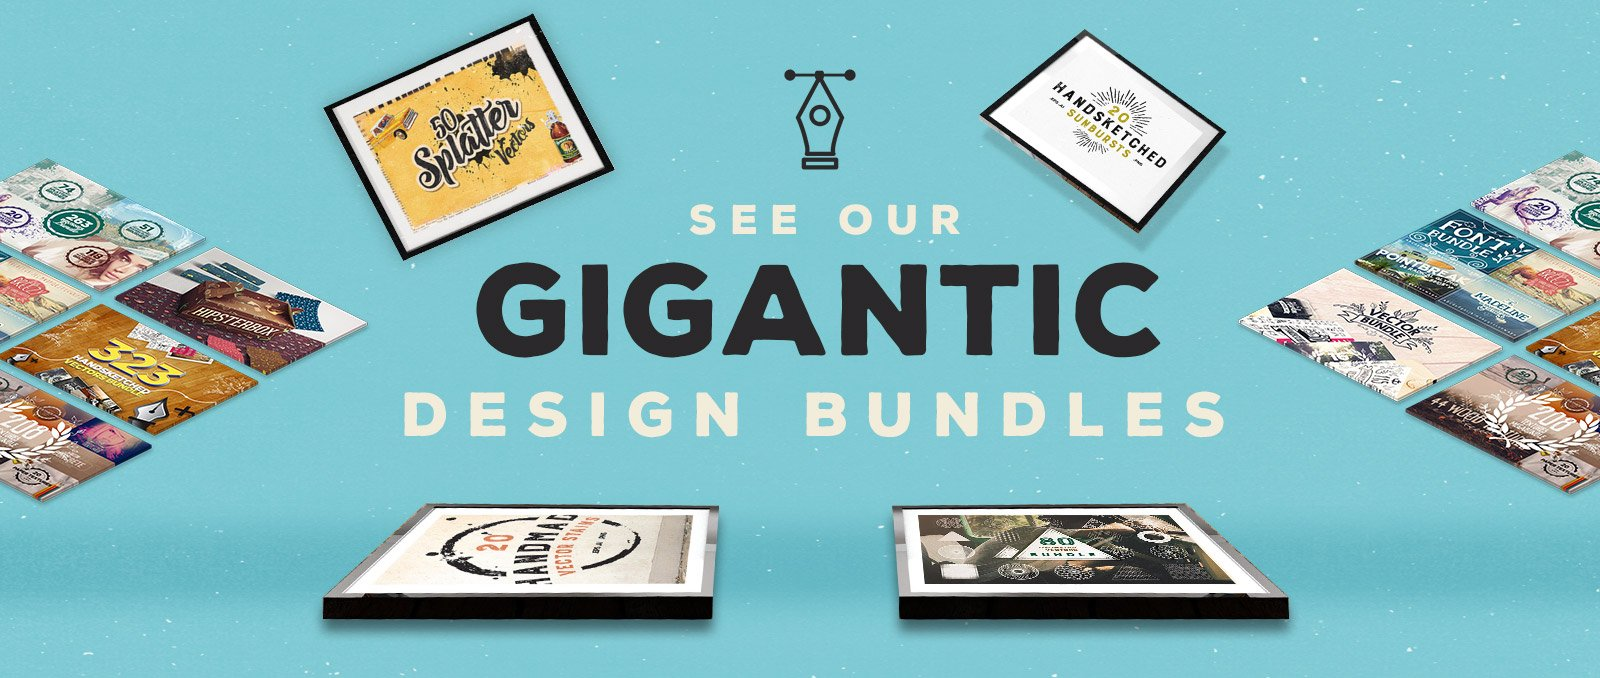 Layerform Design Co Design Bundles